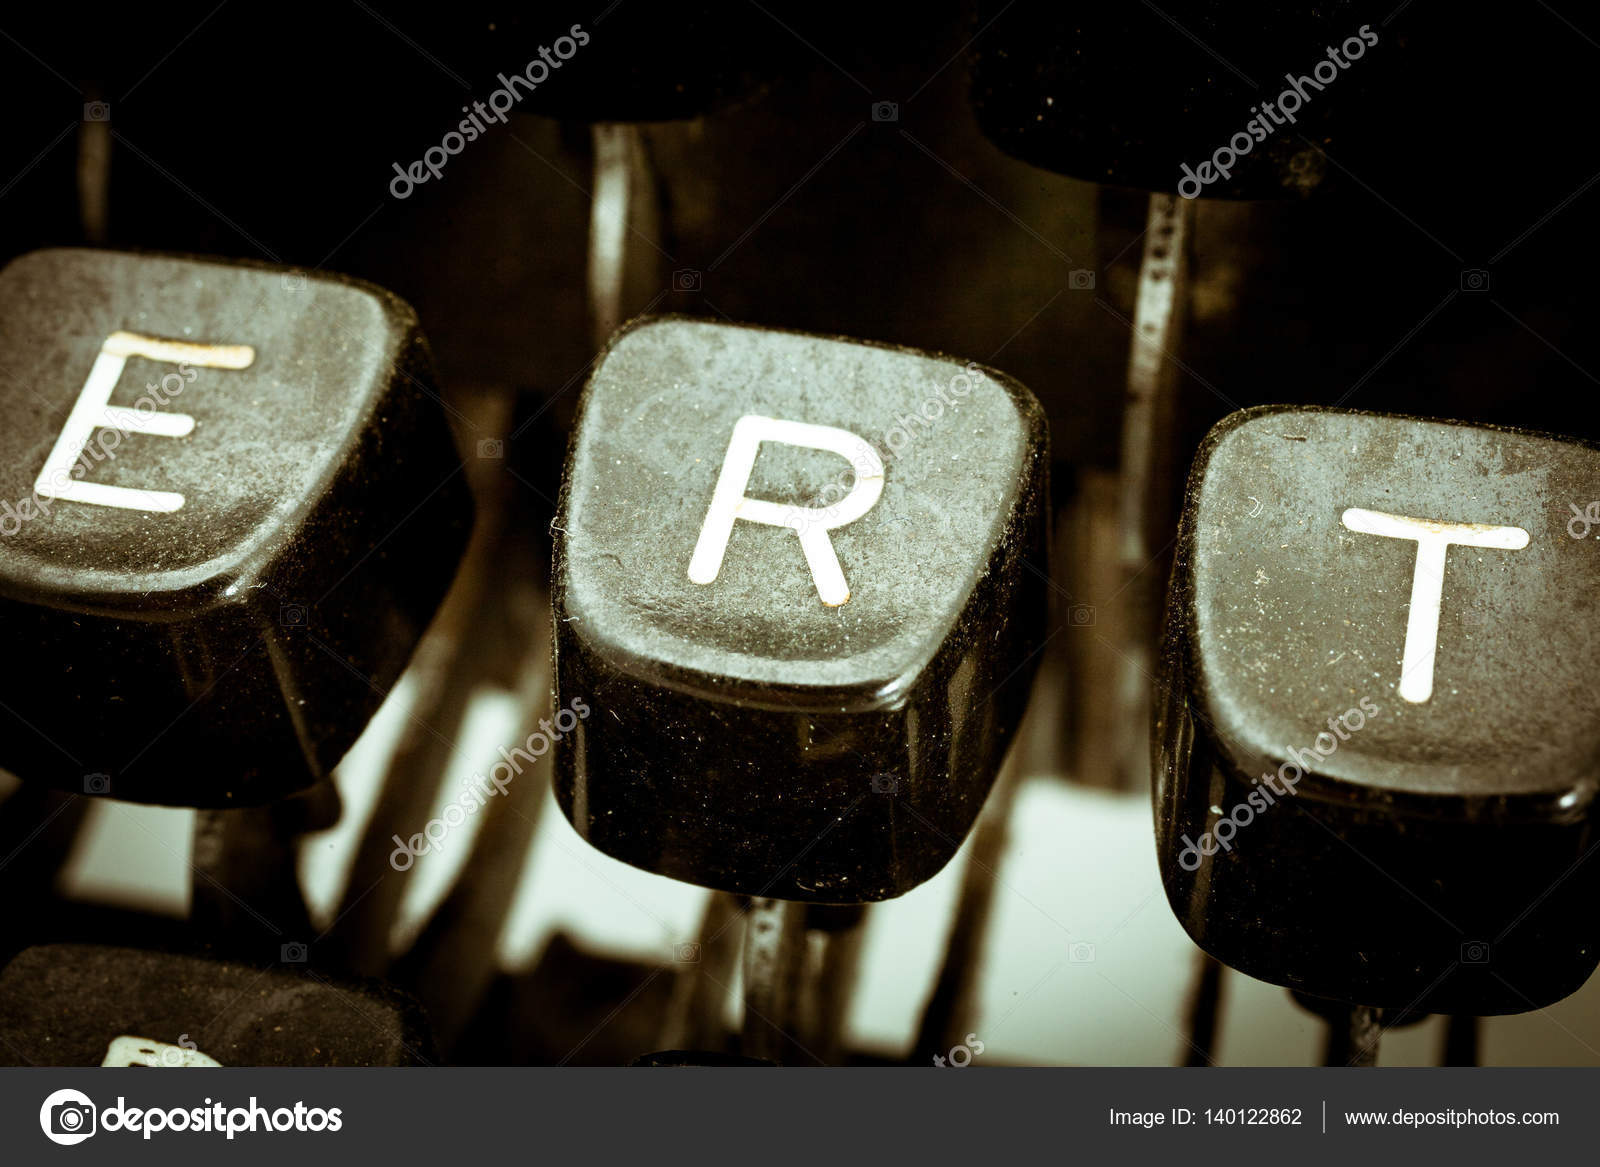 R Letter On A Vintage Typewriter Keyboard Stock Photo